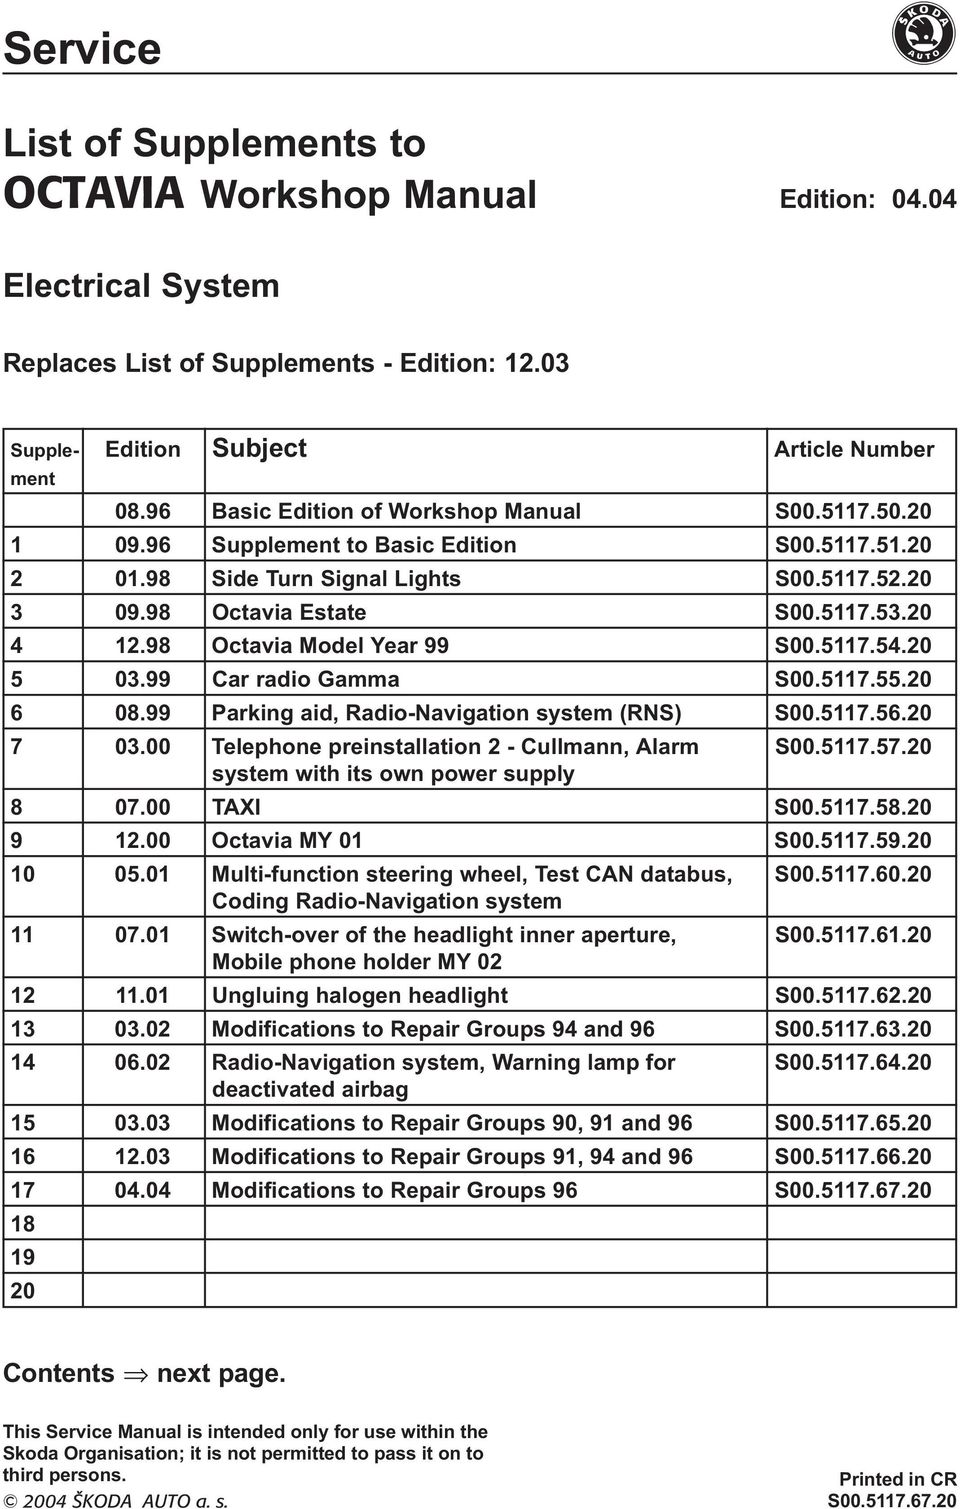 Clarion Xmd2 Wiring Diagram Example Electrical Xma2 Wire Harness 27 Images 16 Pin